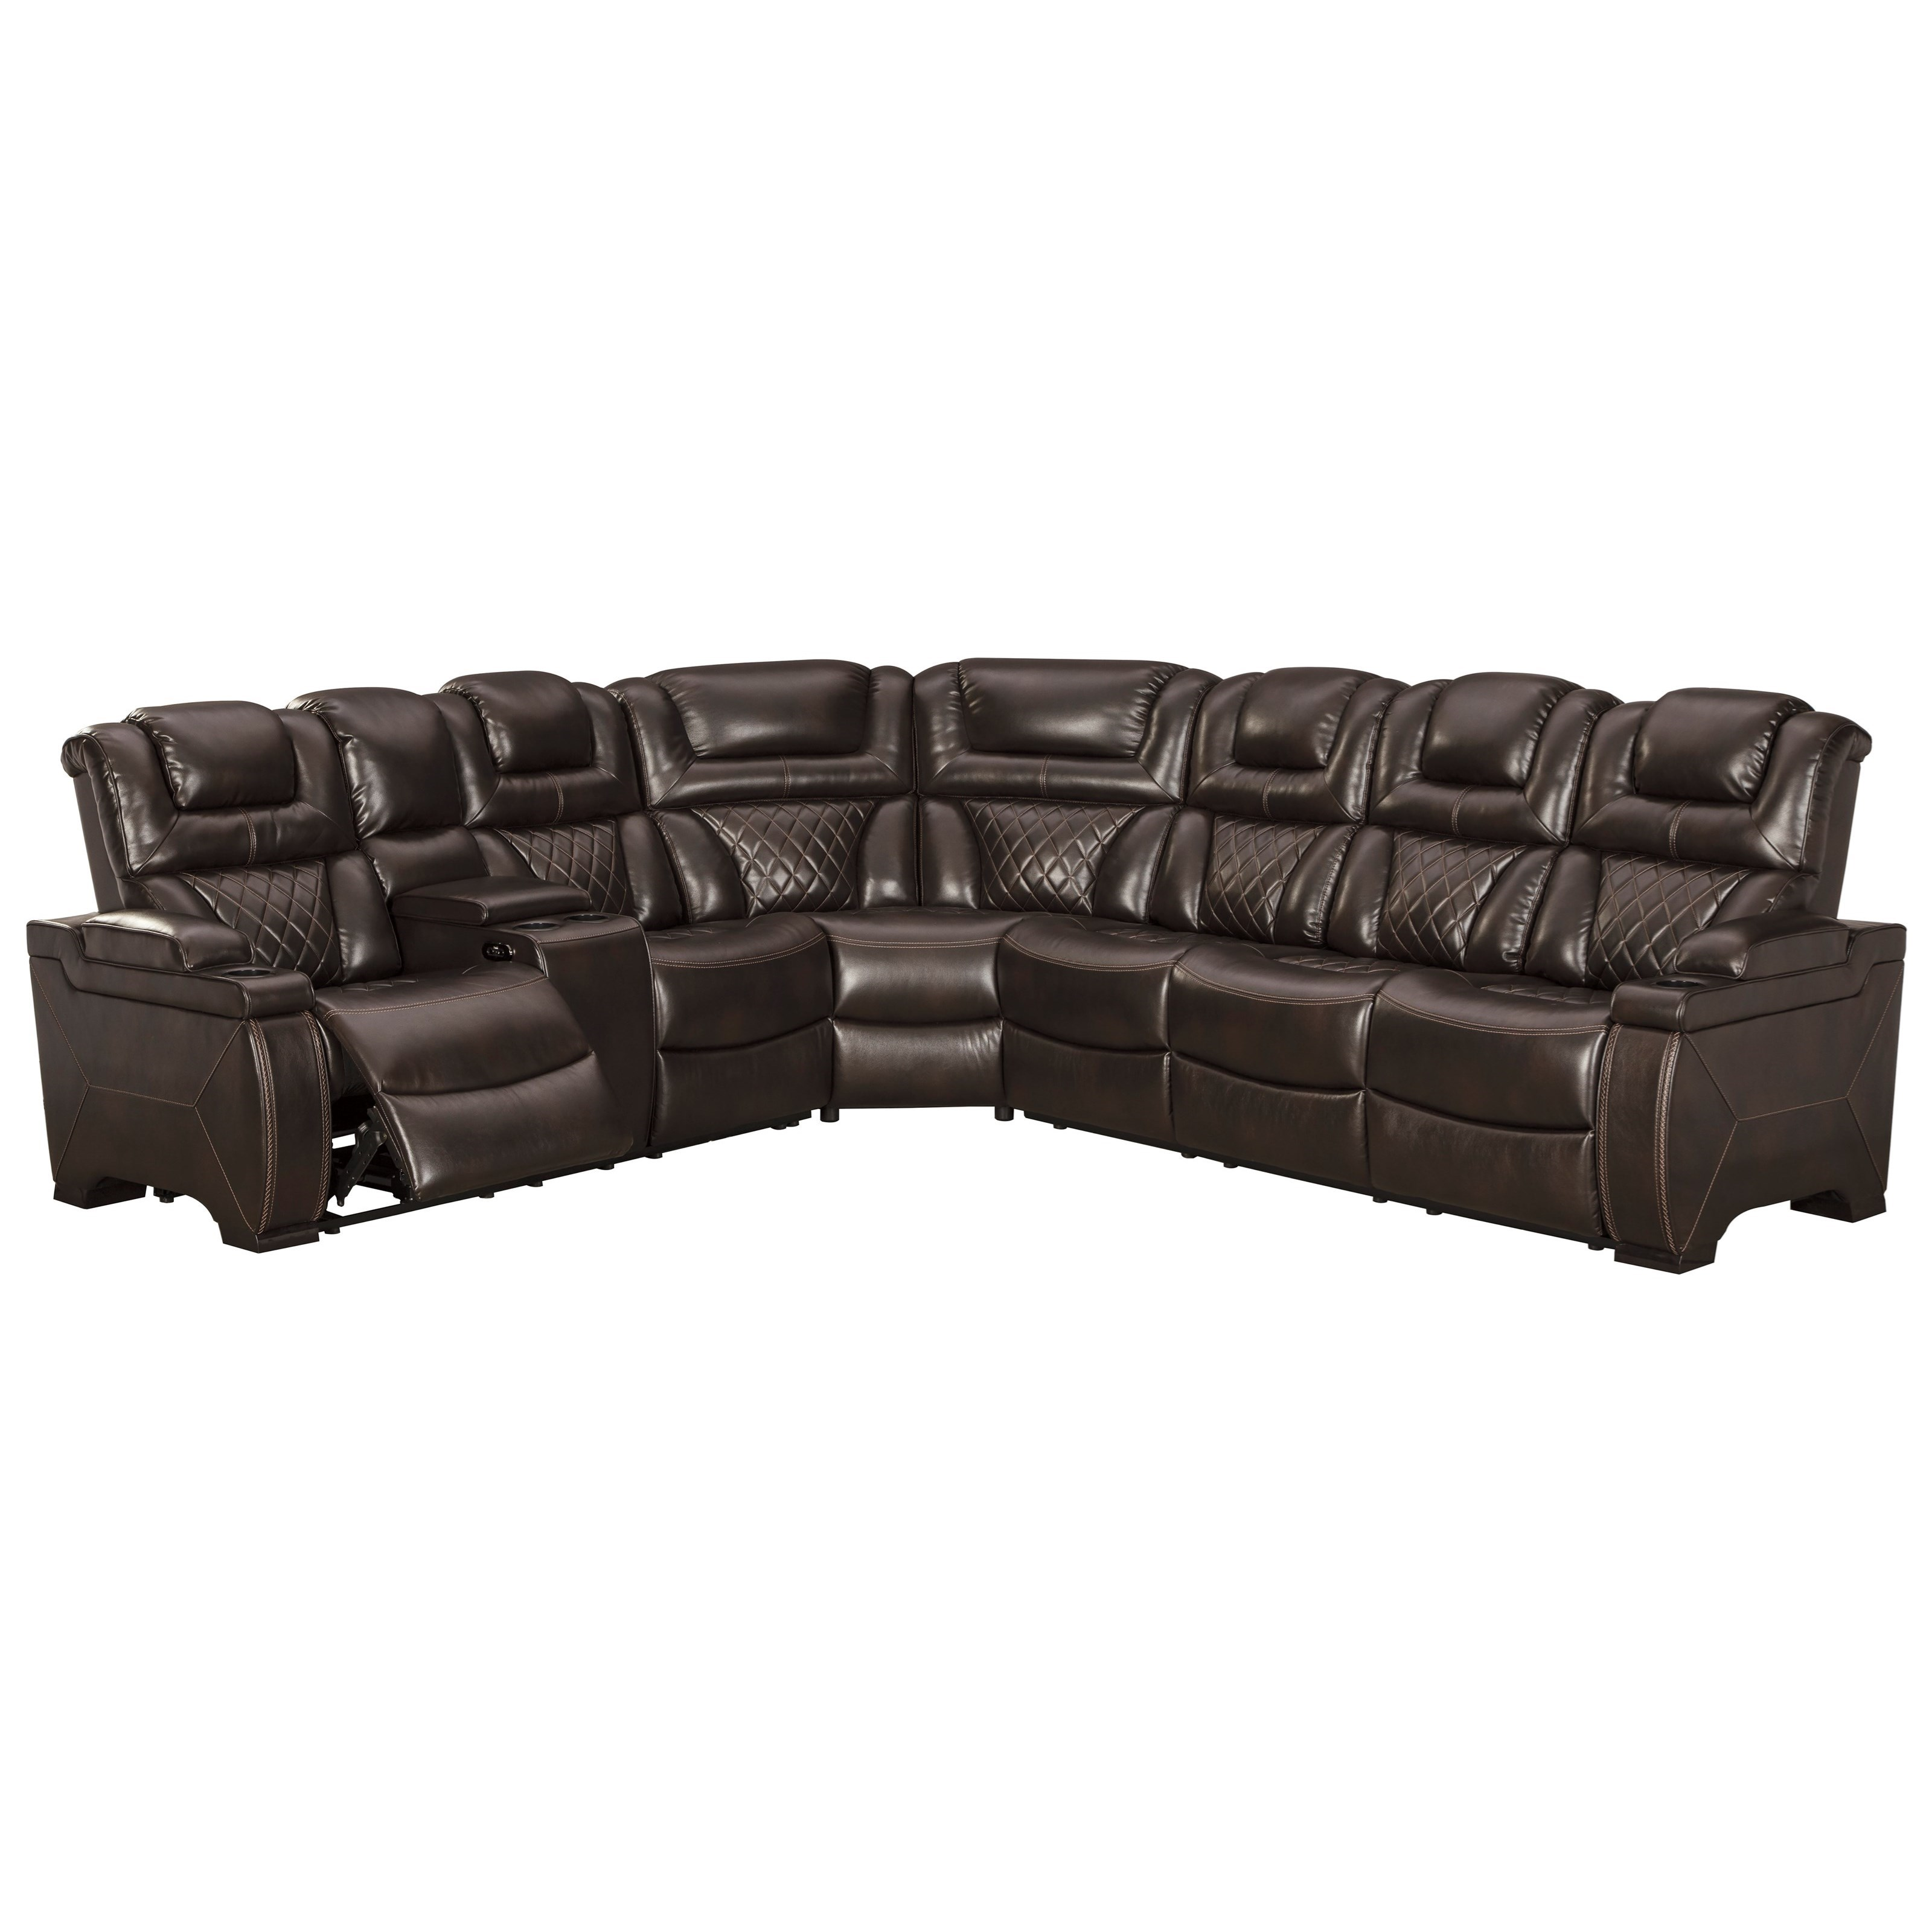 Warnerton Power Reclining Sectional by Signature Design by Ashley at Beck's Furniture